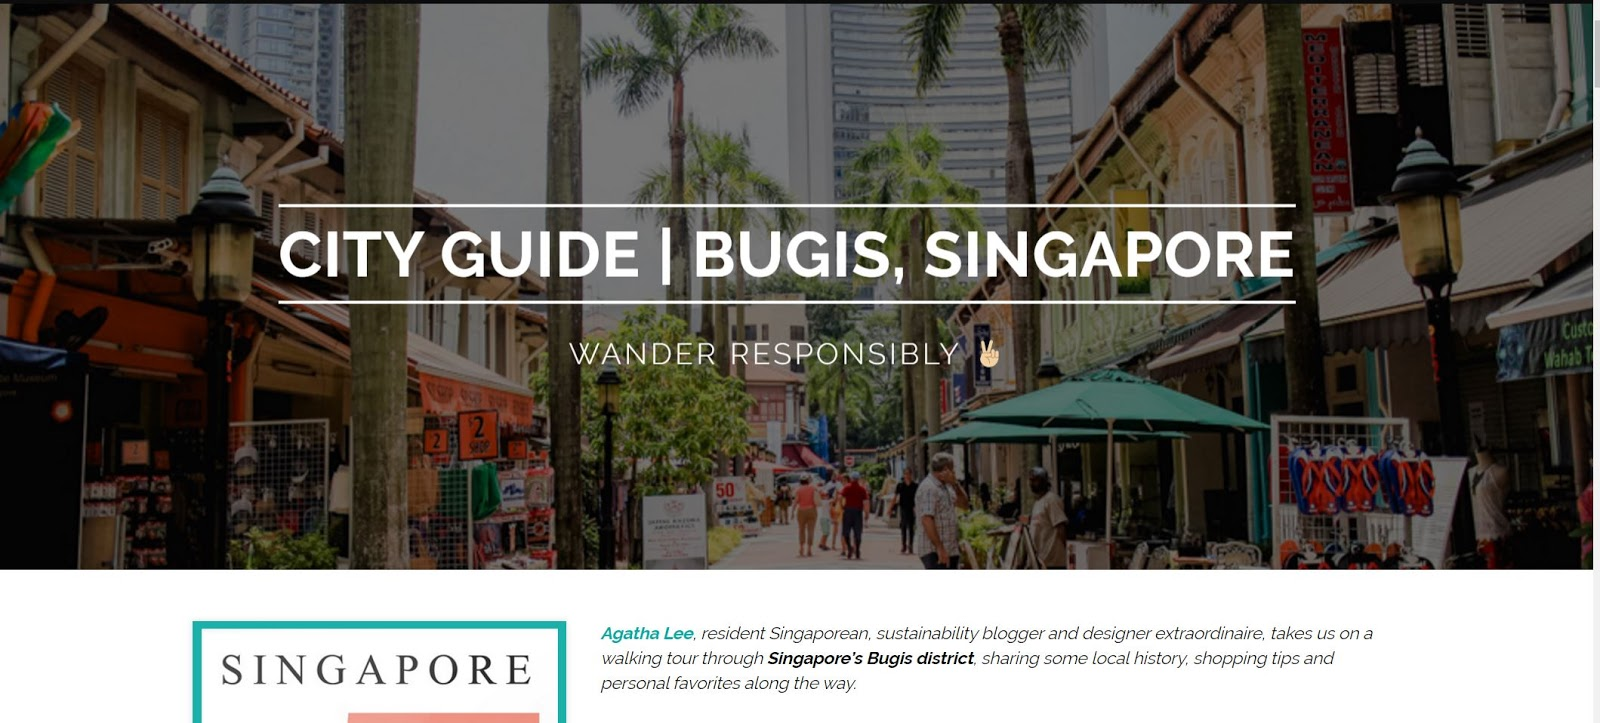 Wander Responsibly in Singapore